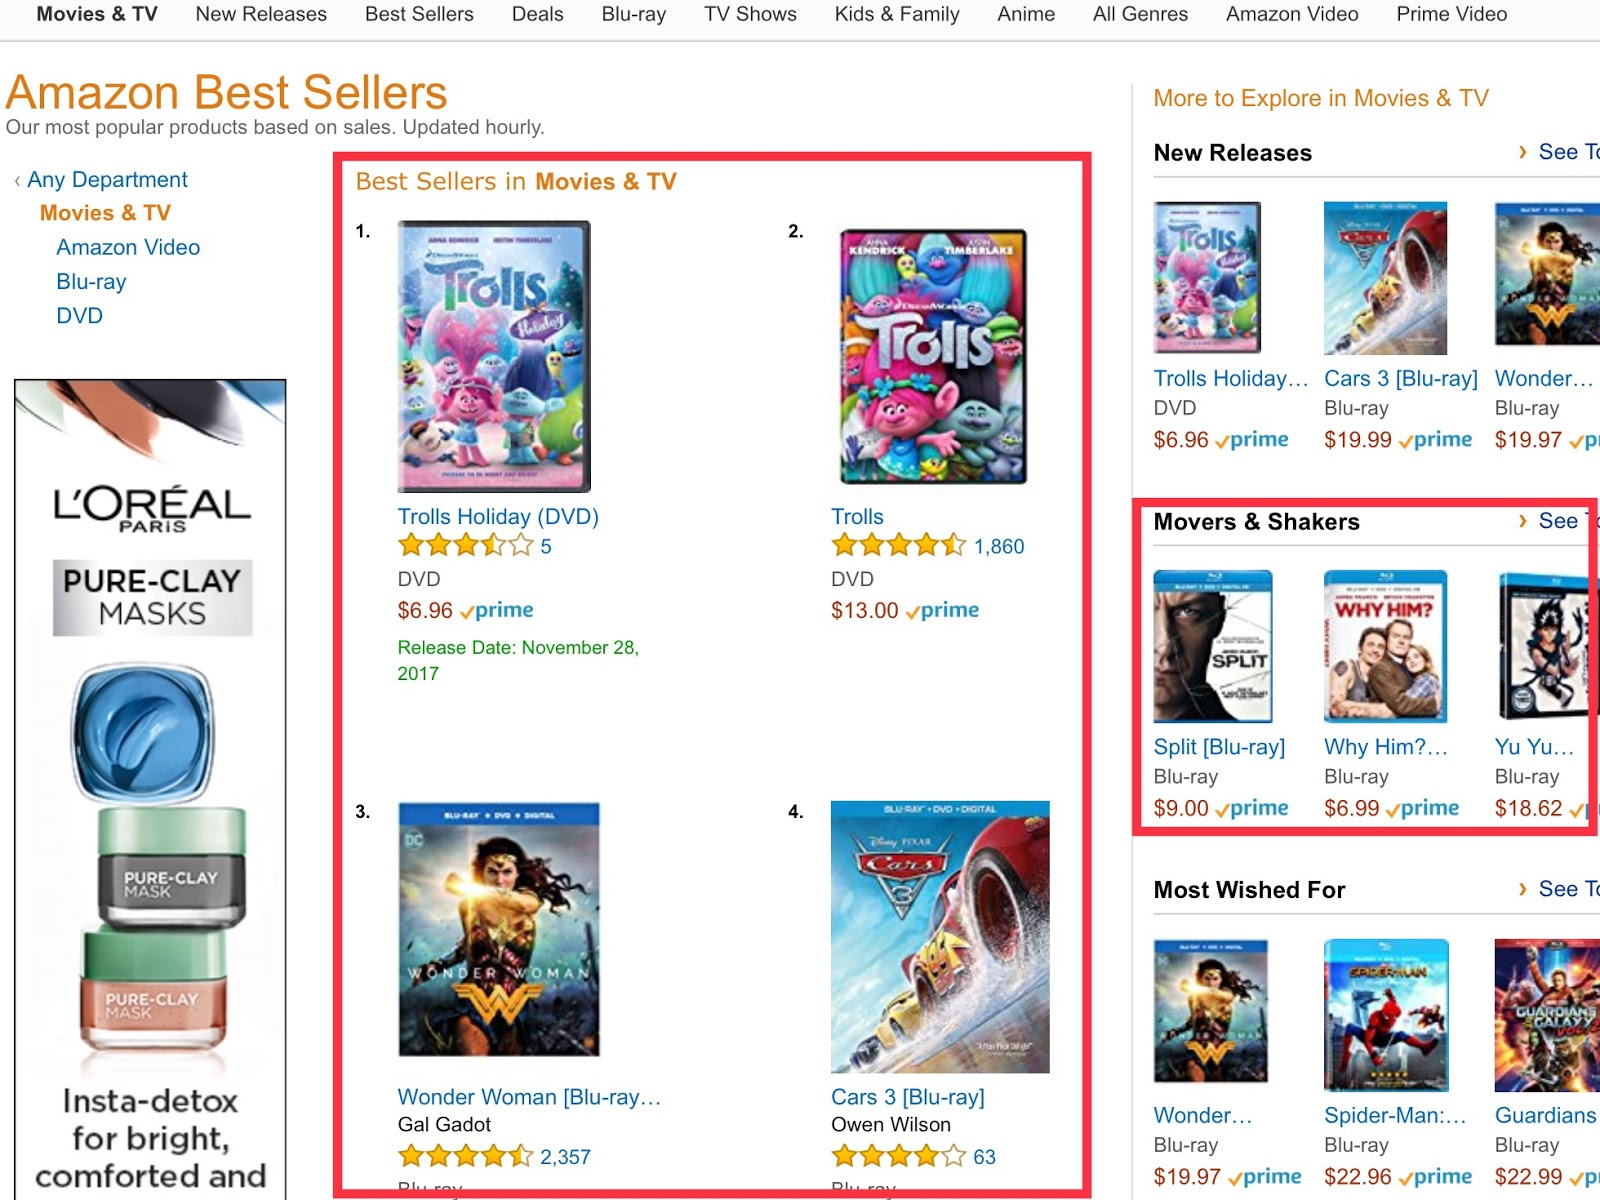 Retail Conversion Lessons: Listing best sellers appeals to those who are looking for suggestions.